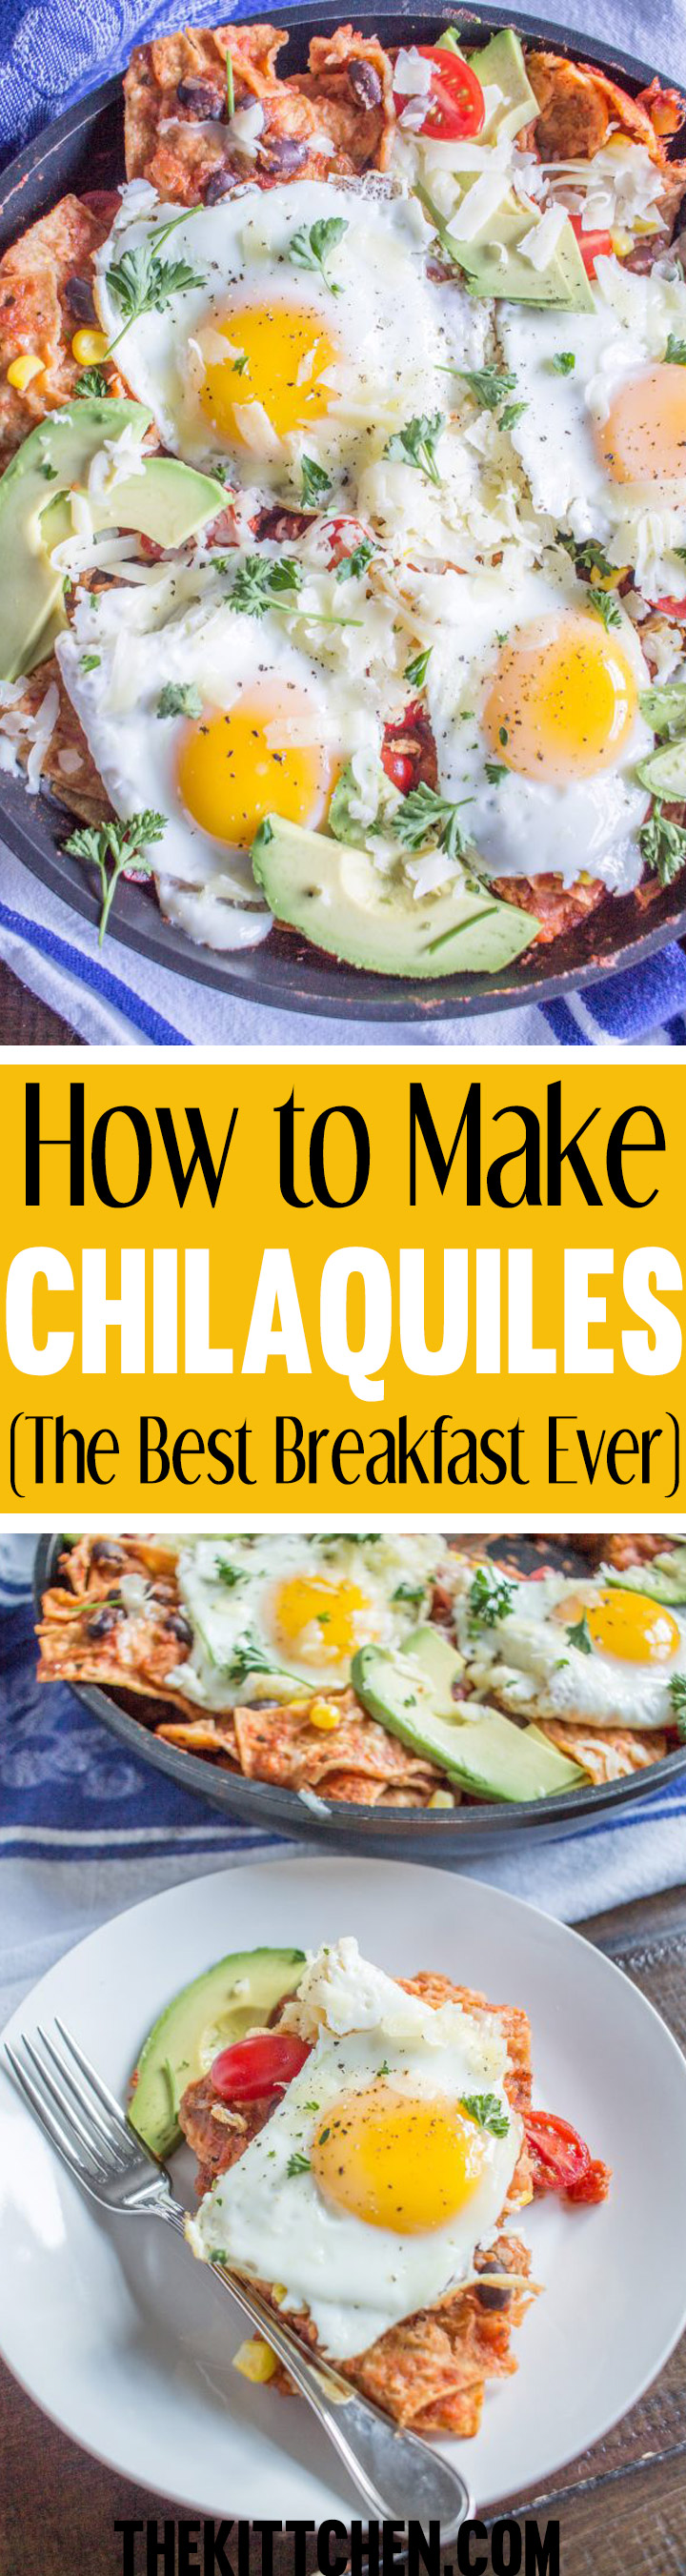 Learn how to make chilaquiles. In my humble opinion, this is the best breakfast ever. Plus, it is likely that you have all of the ingredients waiting for you in your kitchen.